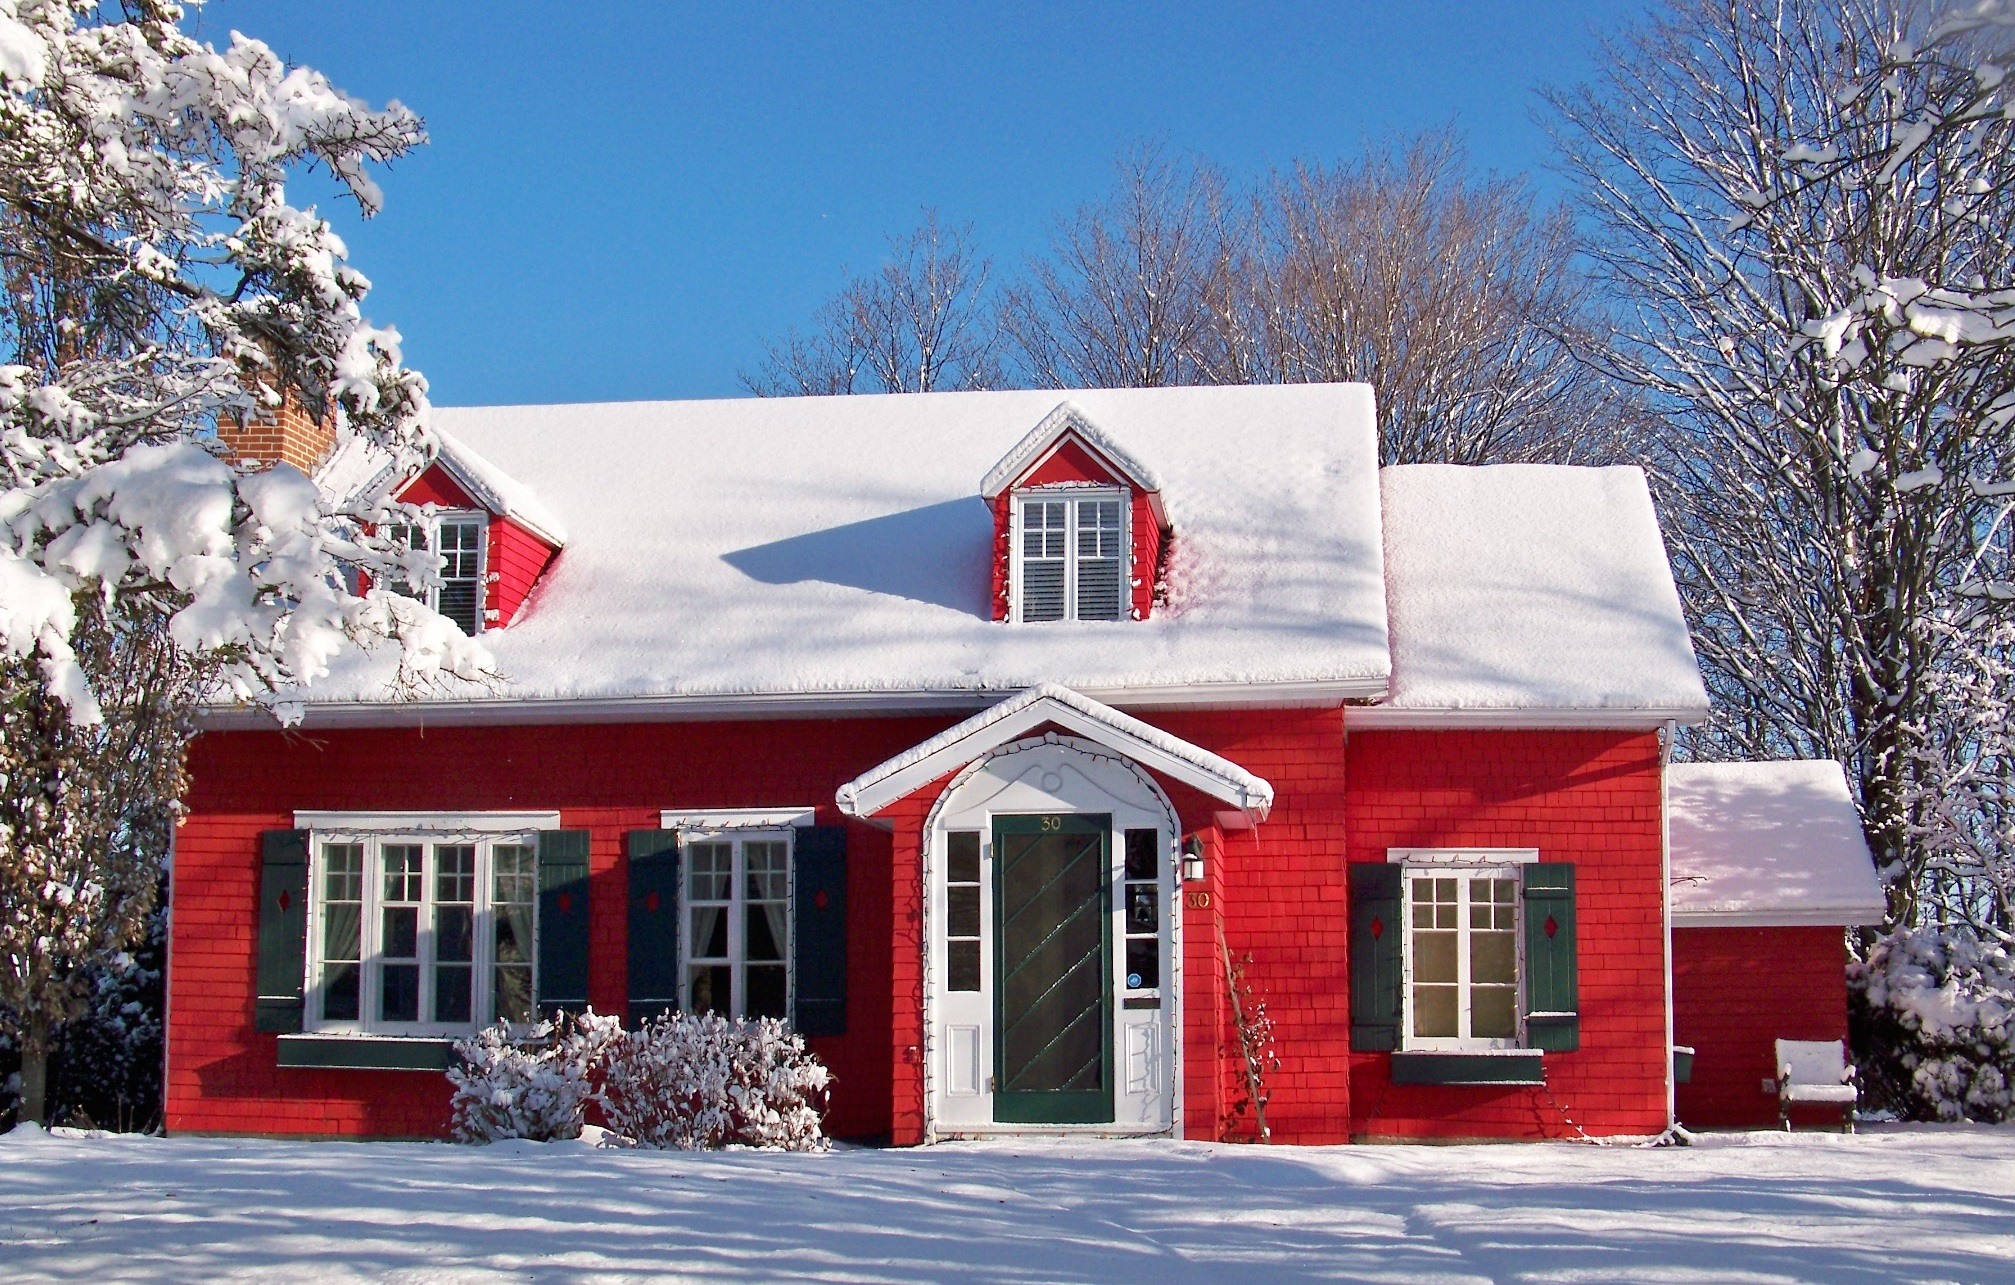 Red House And Snow By PhilippeL Red House And Snow By PhilippeL